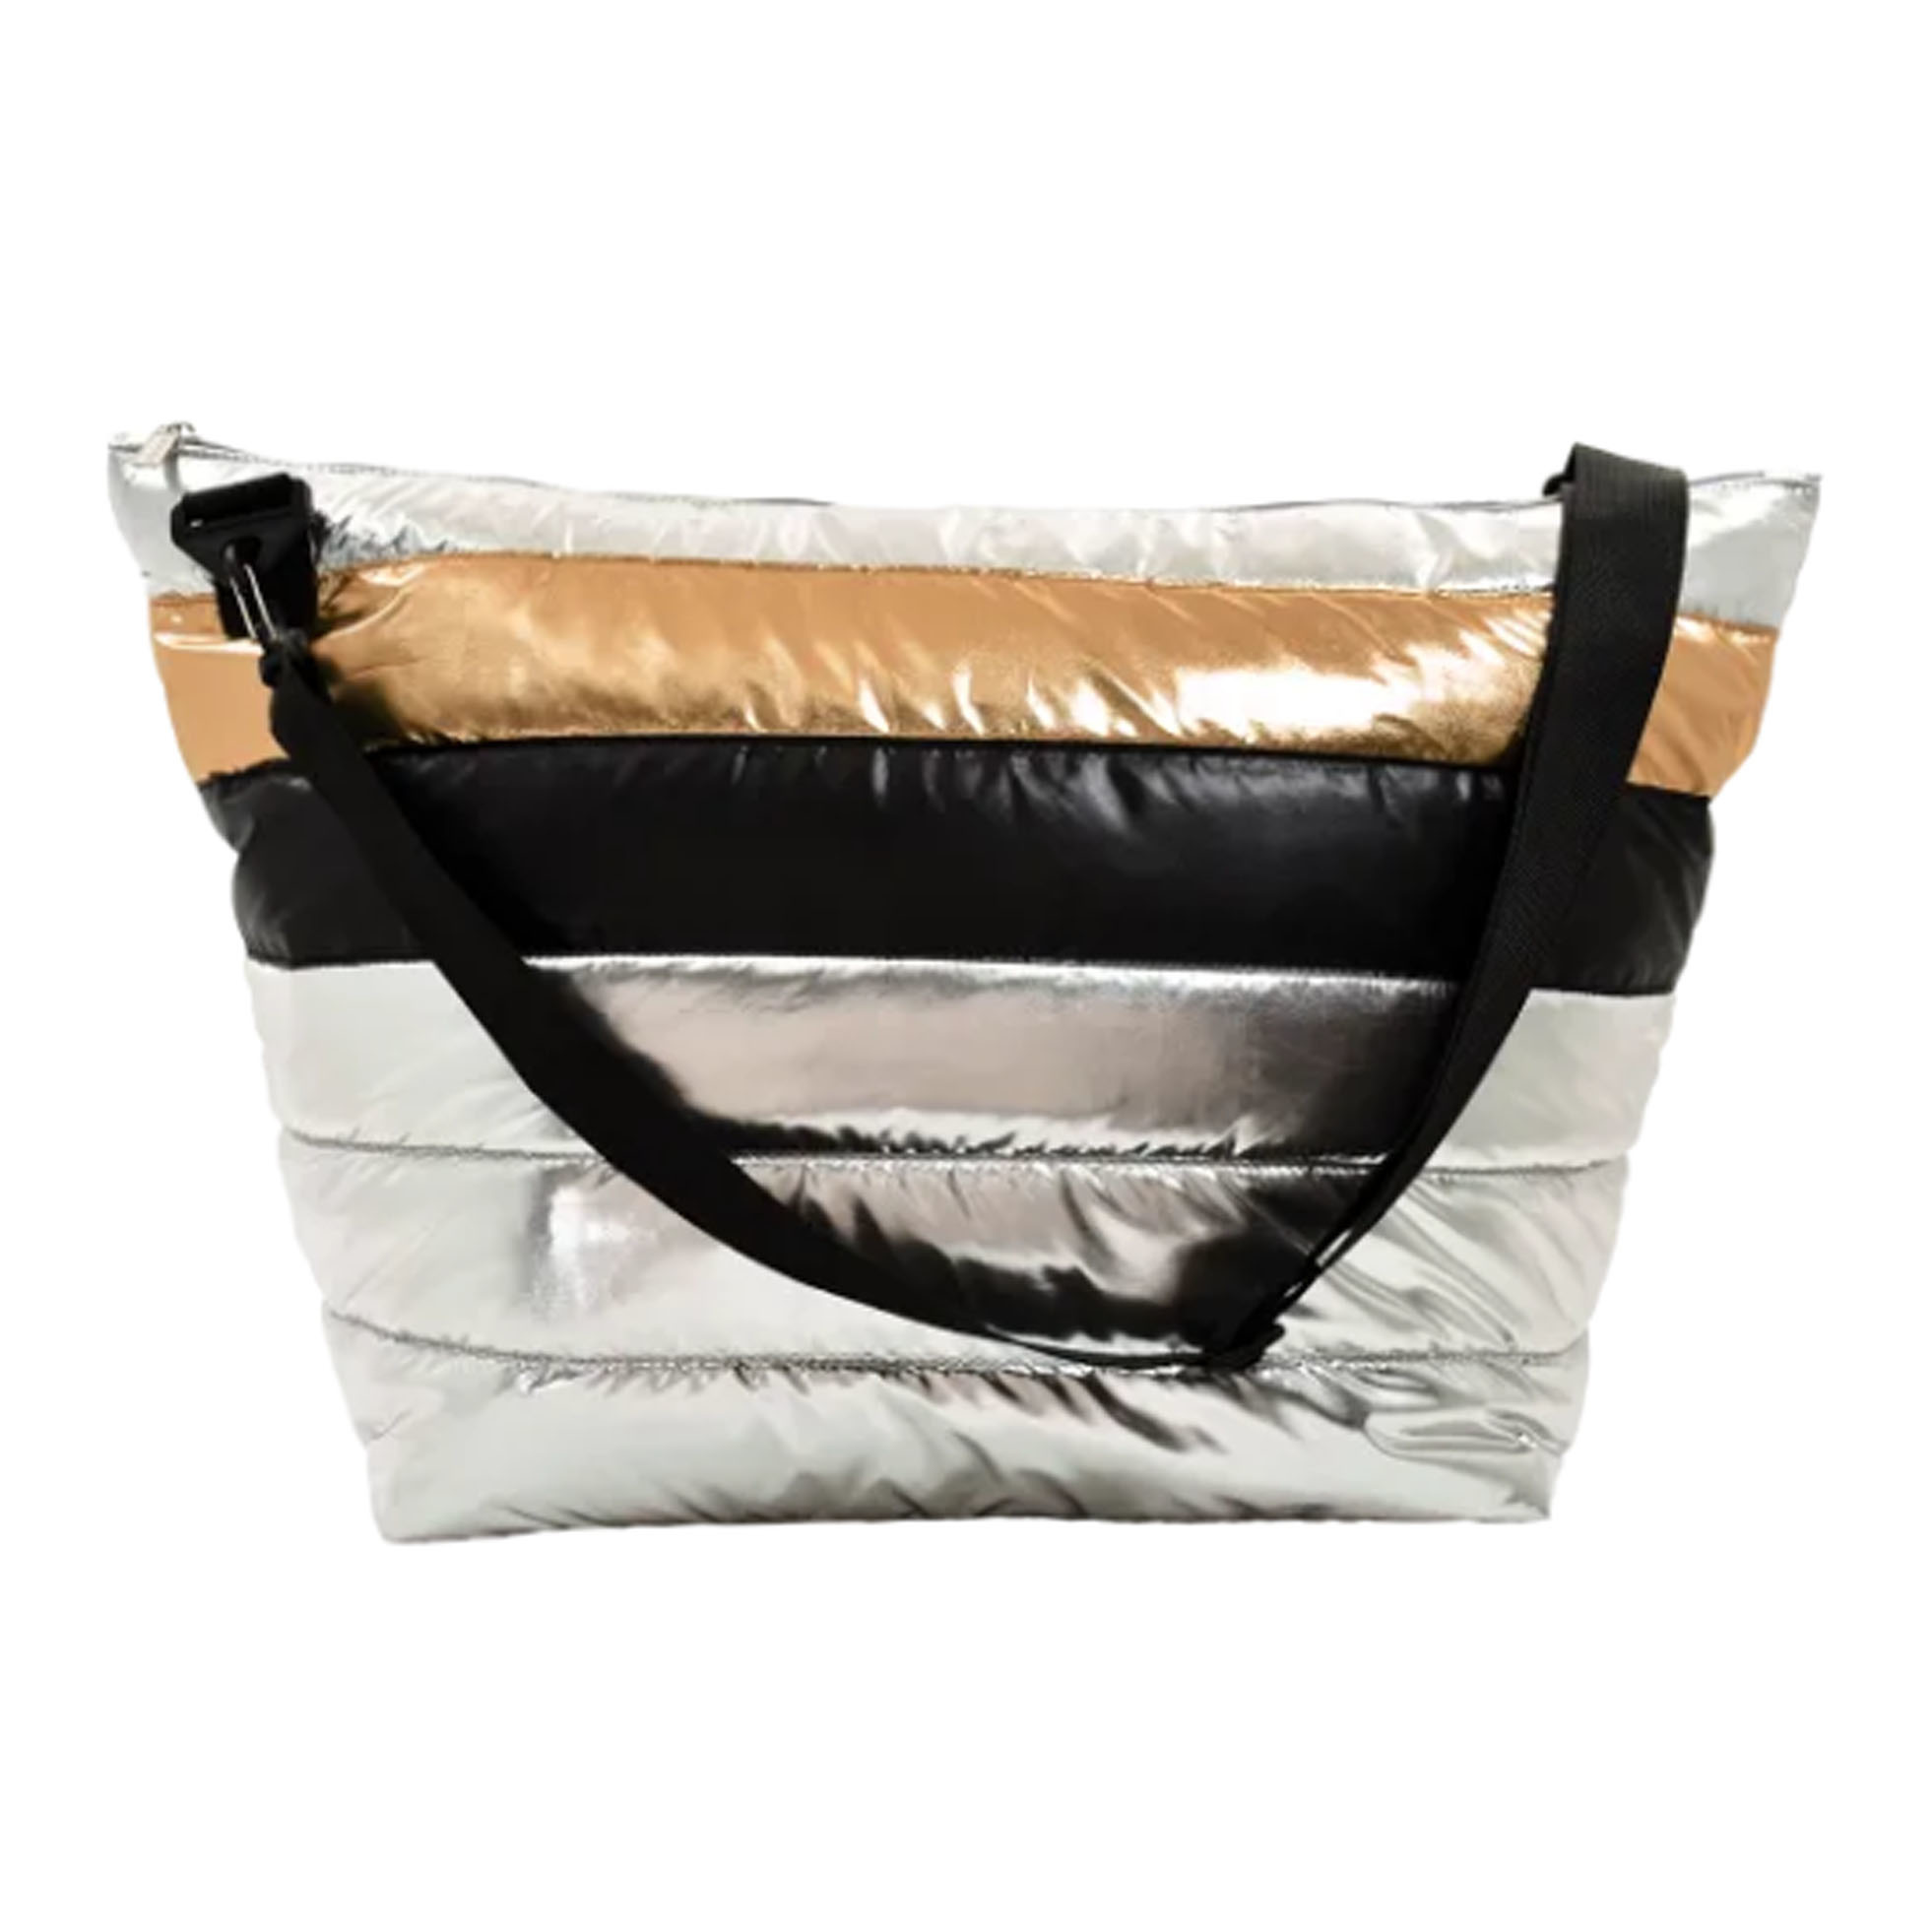 iScream Metallic Puffer Weekender Bag